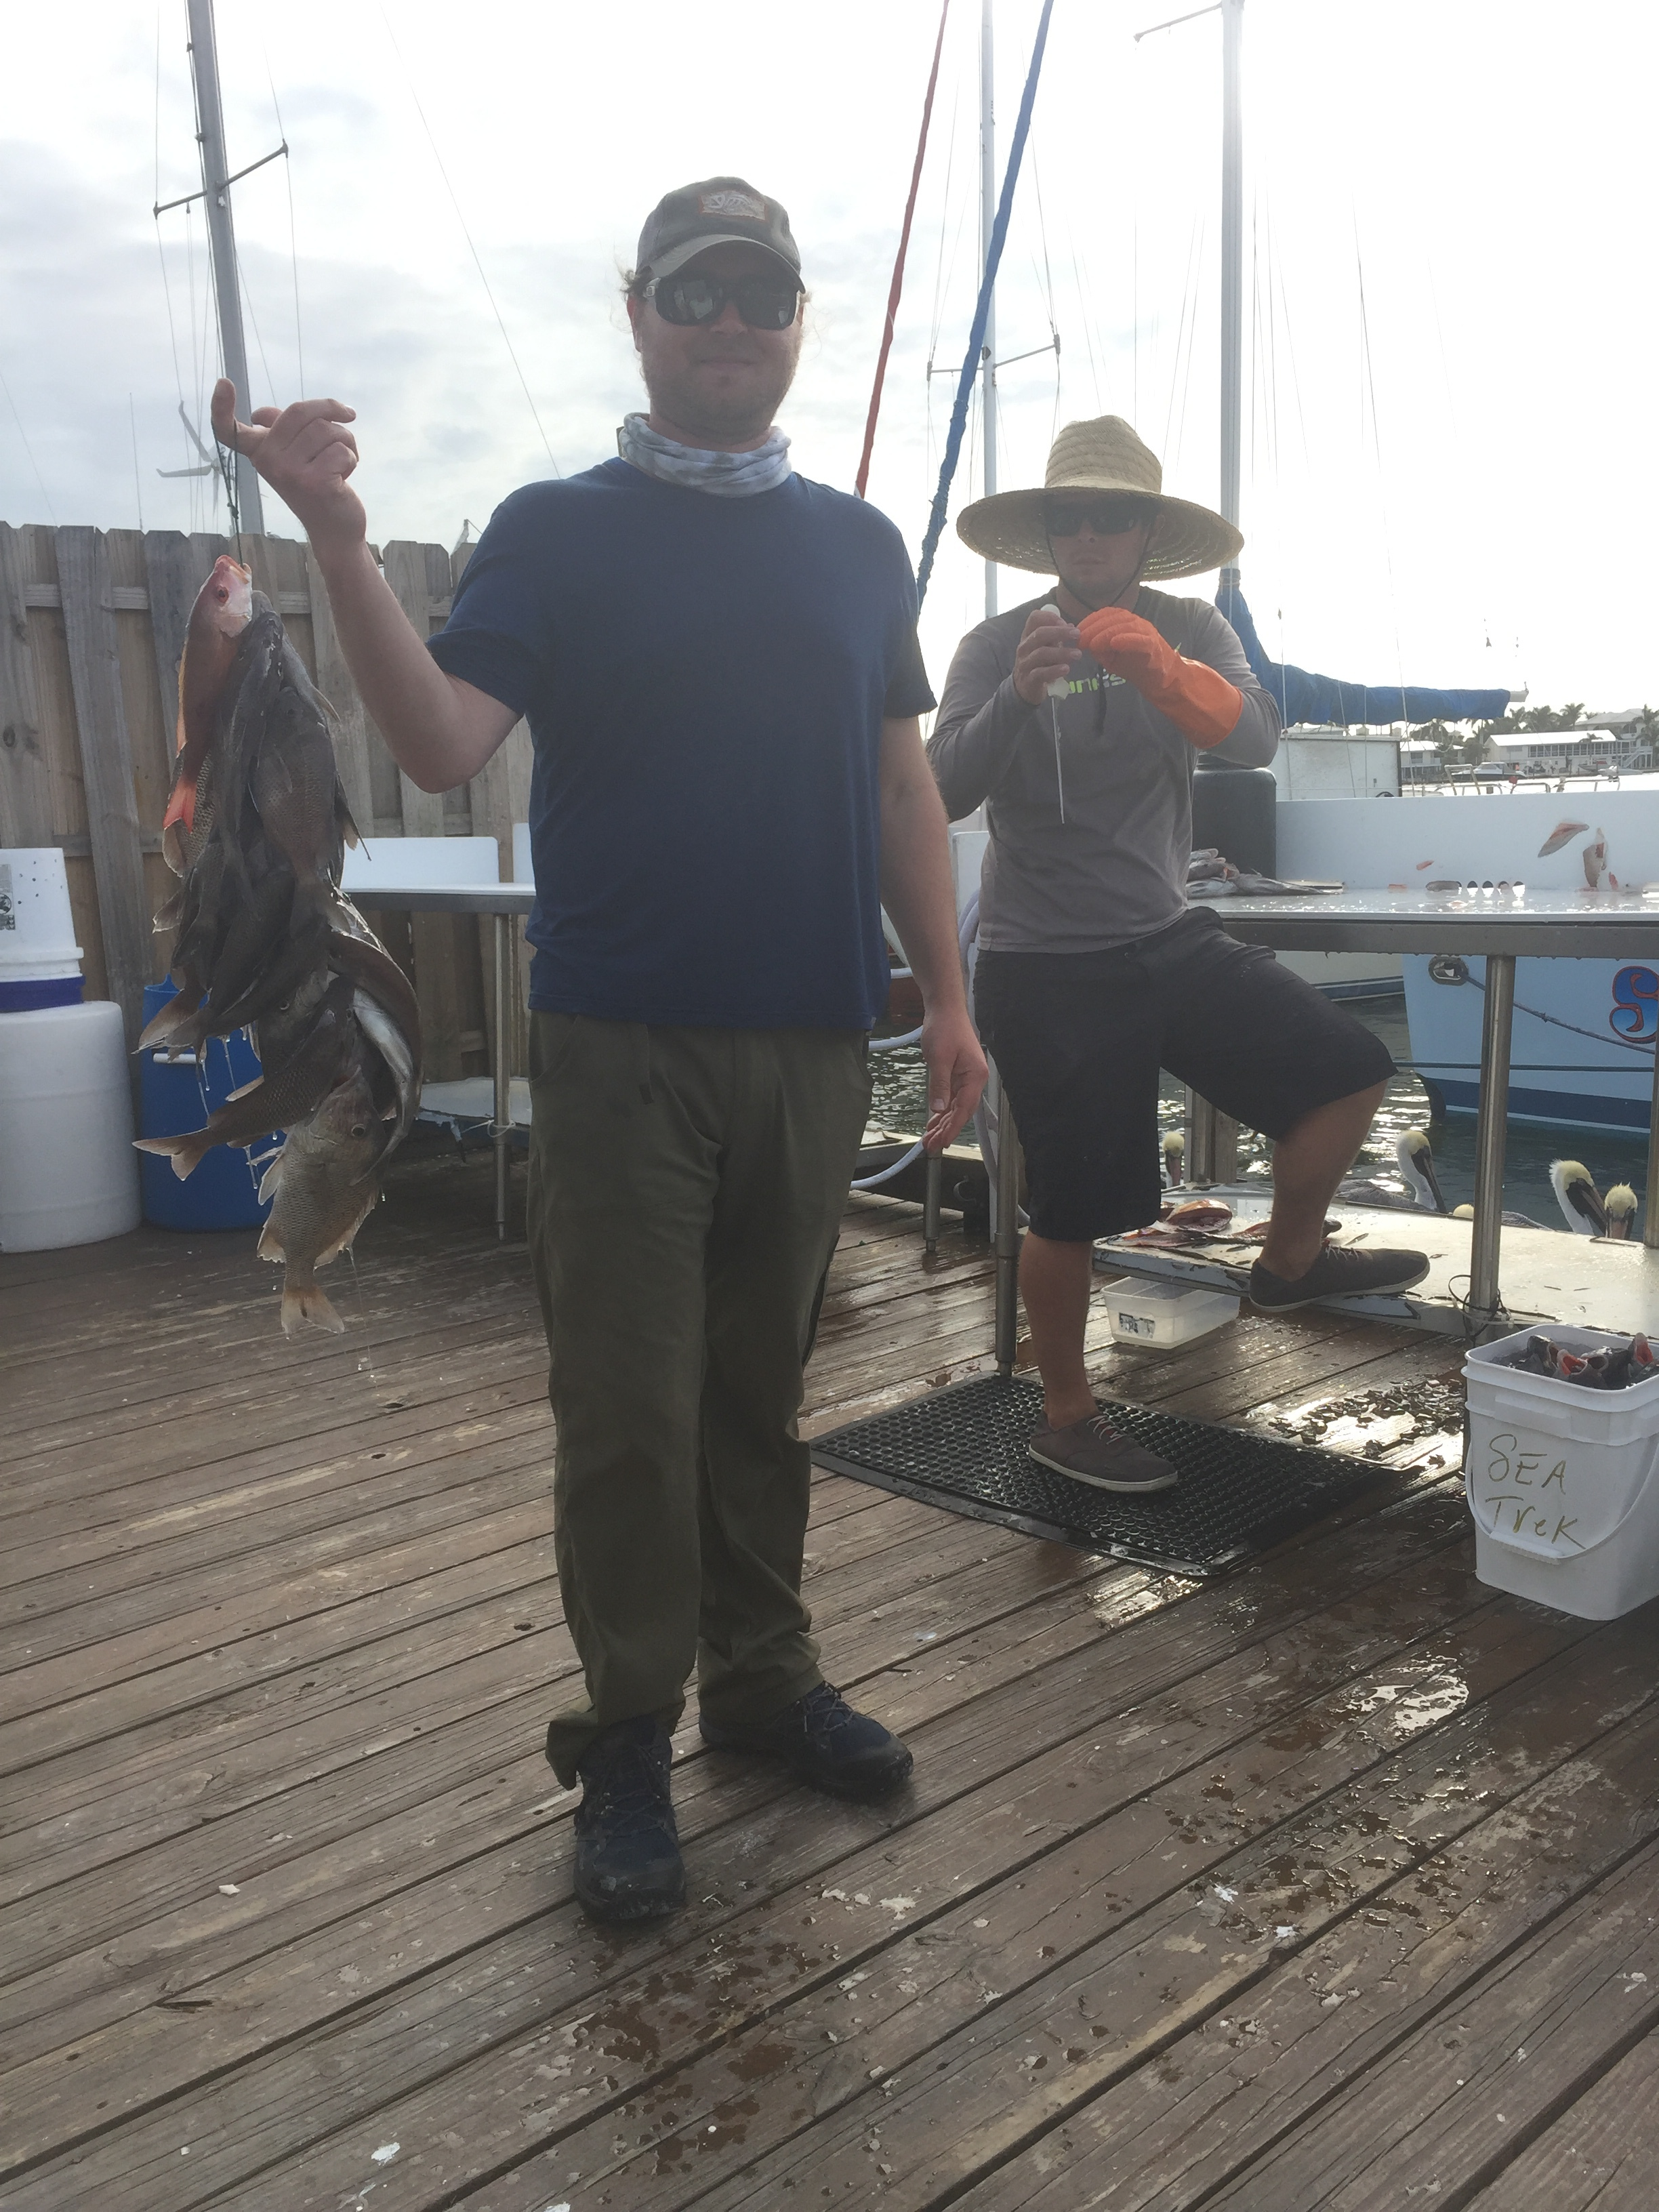 Bobby joined Sea Trek Charters and caught delicious snapper!